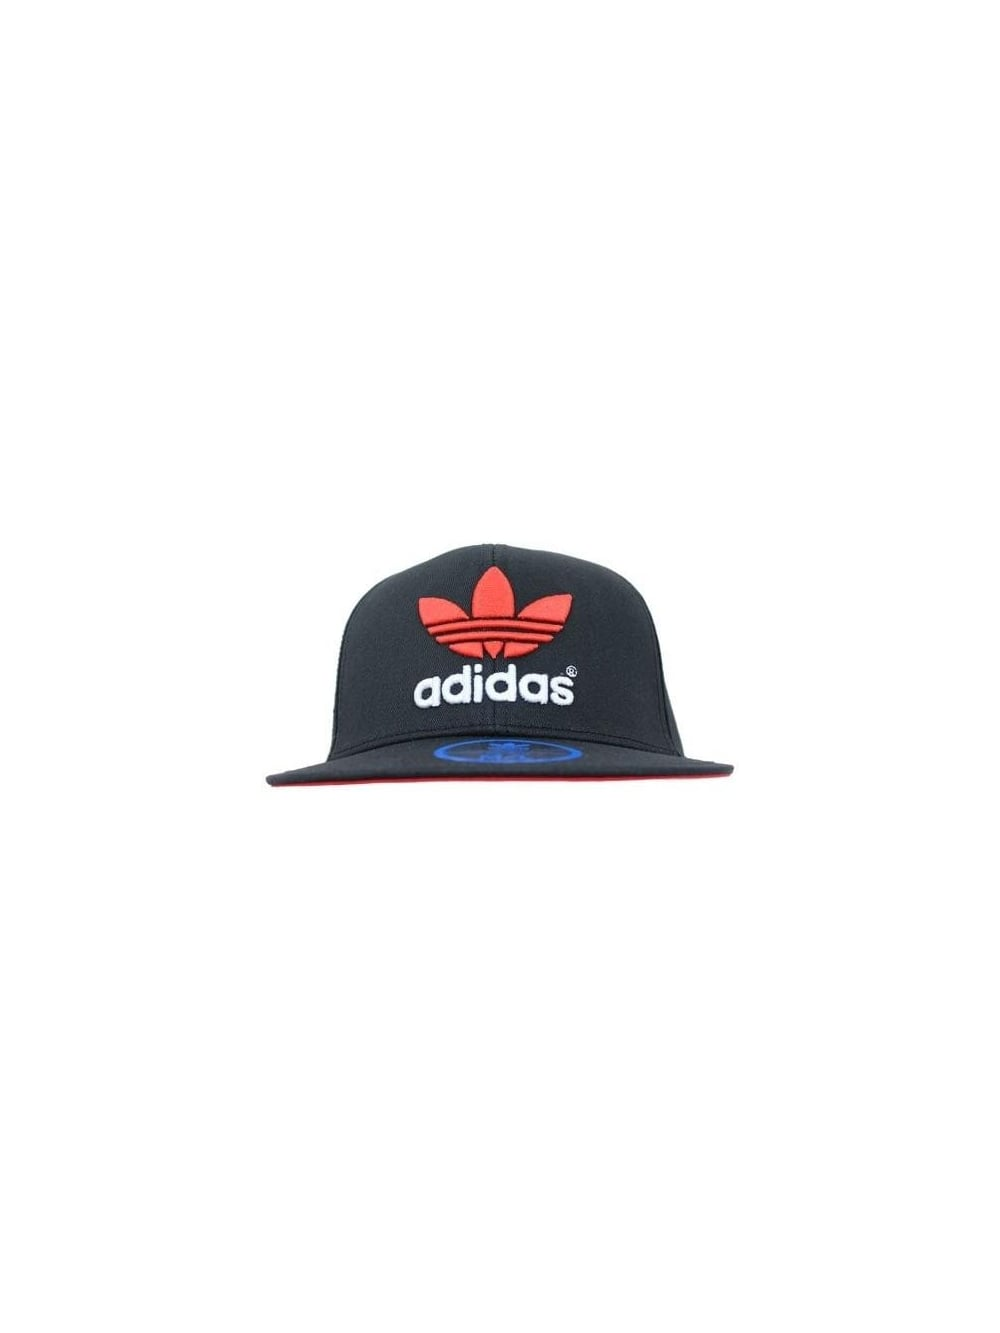 Mens adidas Originals AC Flat Cap Snapback - Black Red  e13cd2f72e1